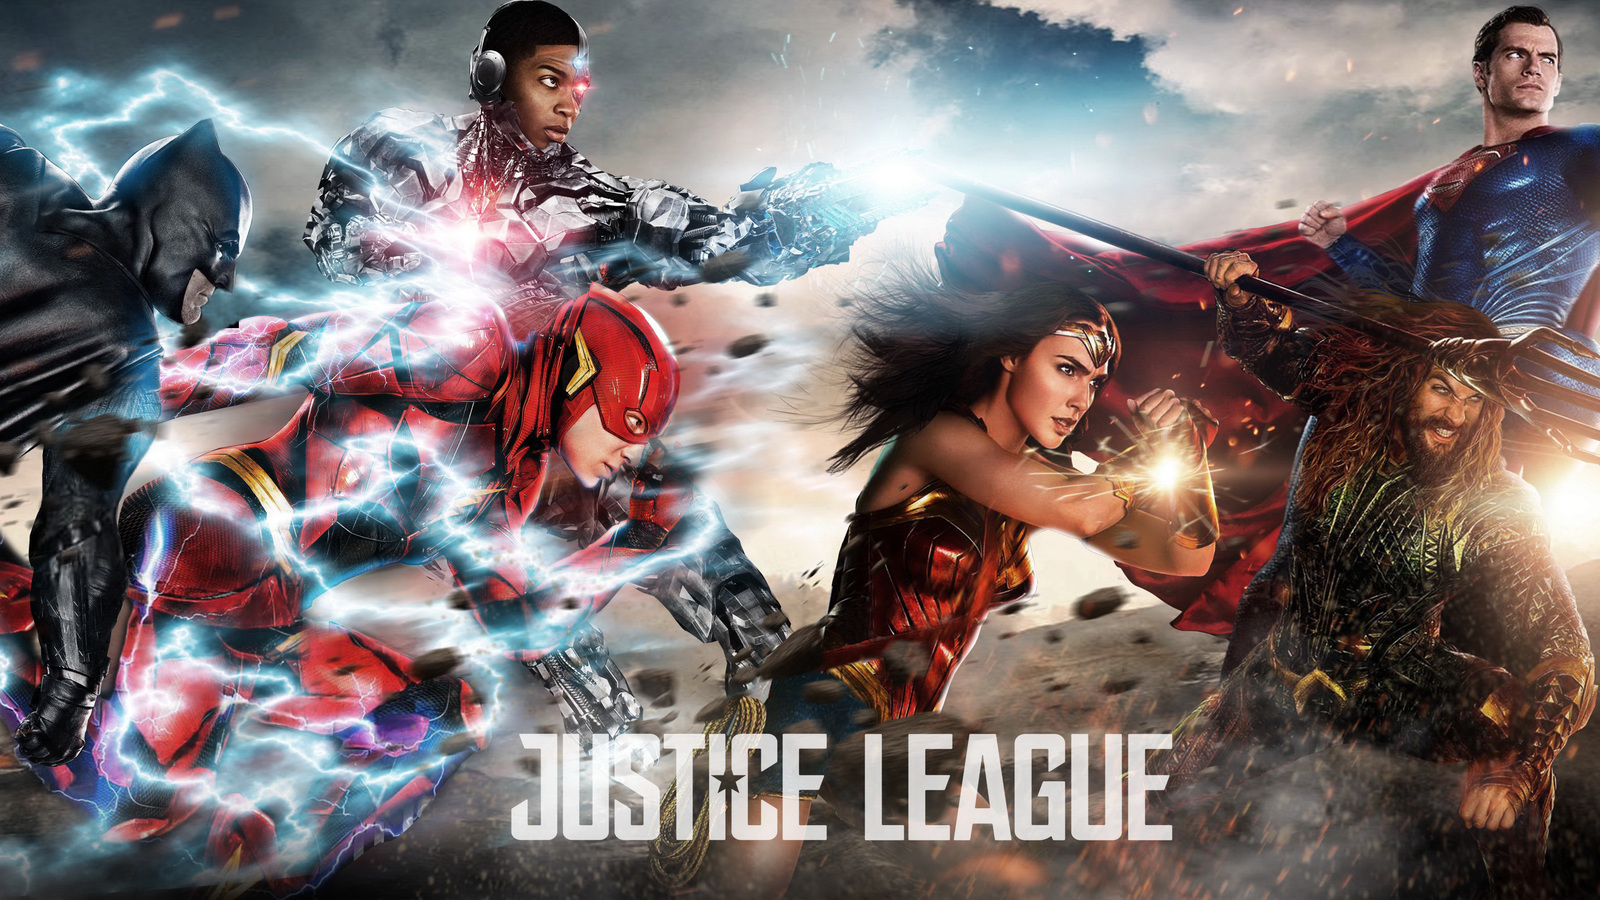 Snyder on Justice League